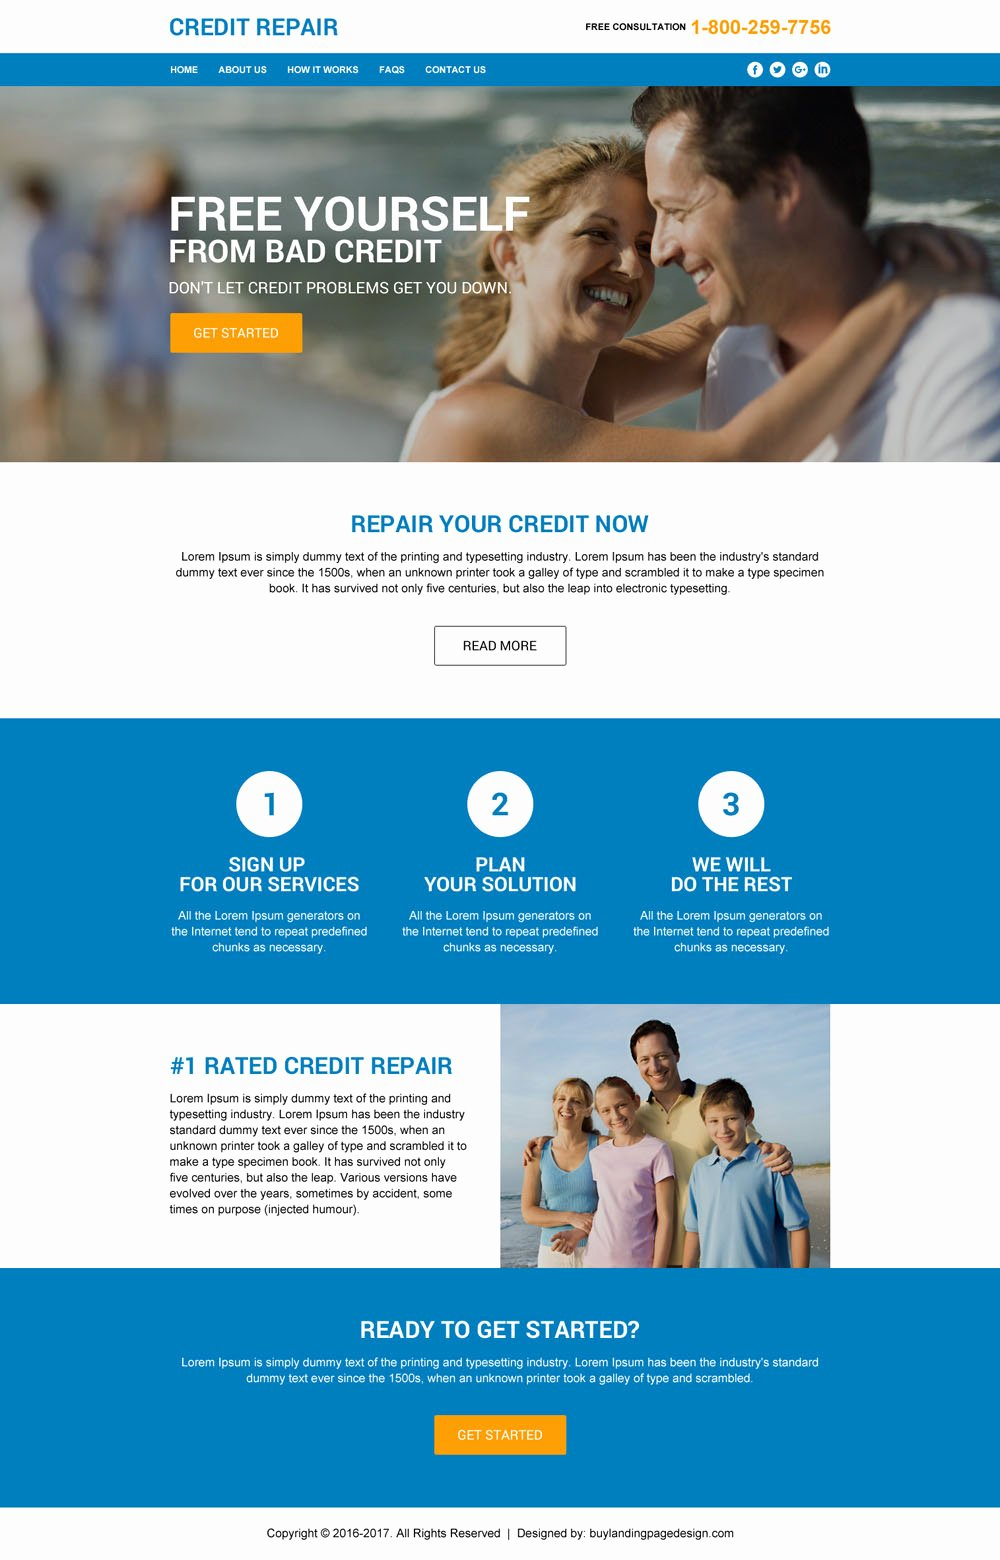 Credit Repair Flyer Template New Credit Repair Website Templates Expofile